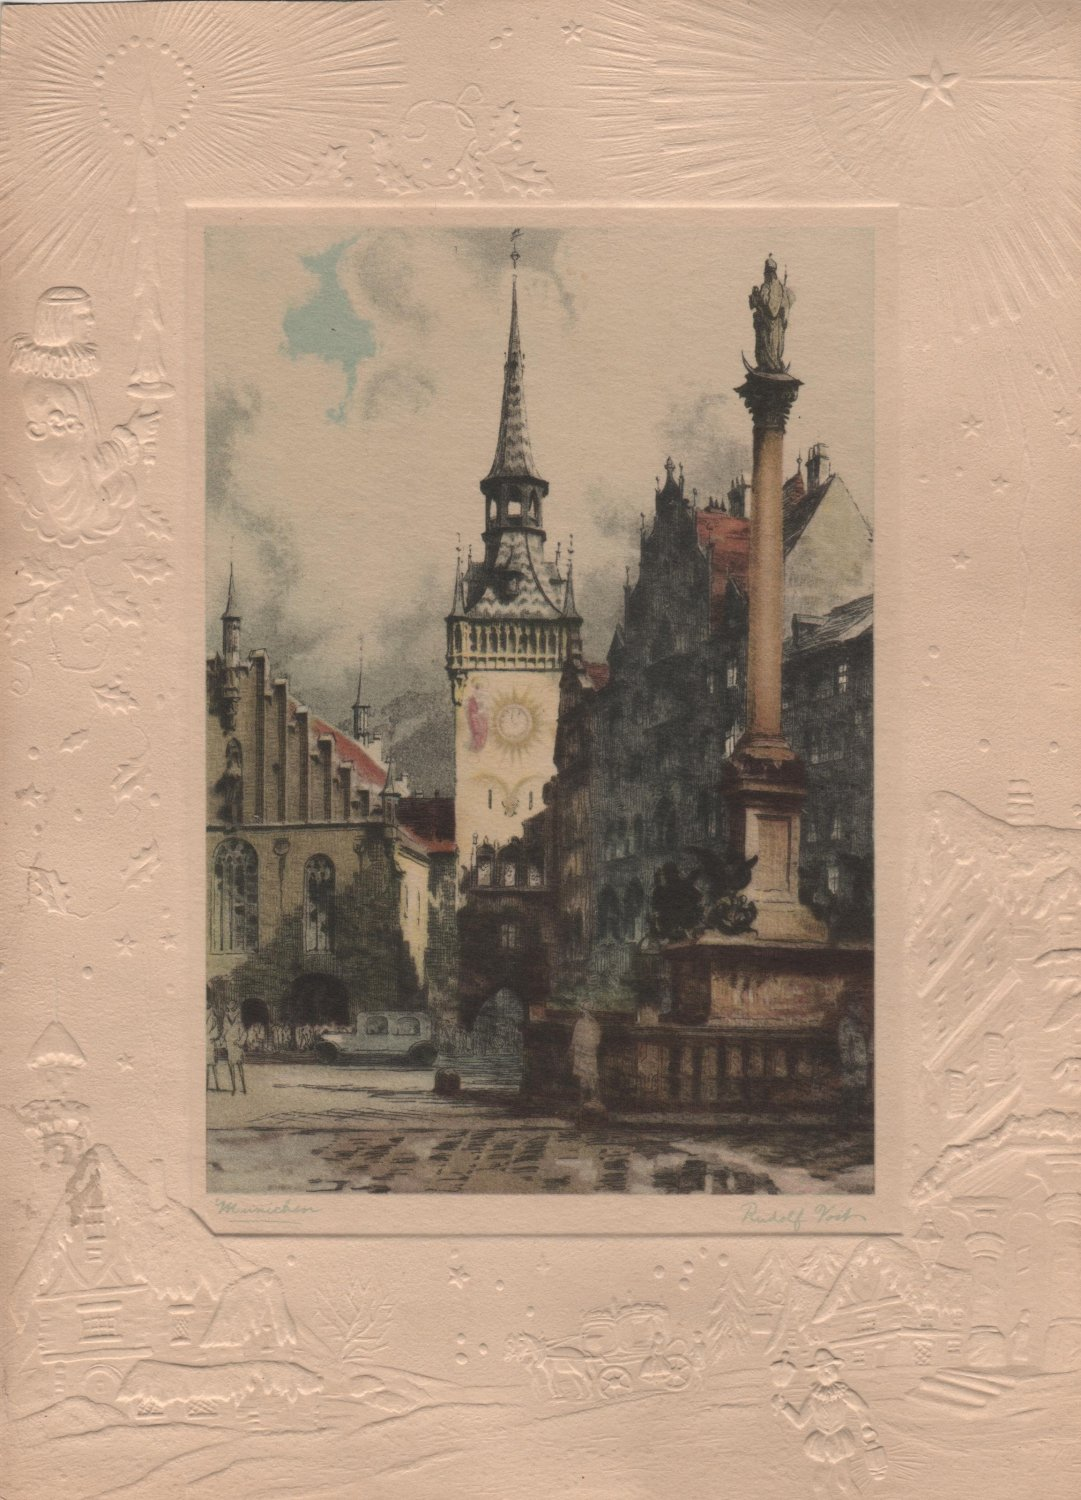 Munichen, Rudolf Voit Color Print with Embossed Border c.1919